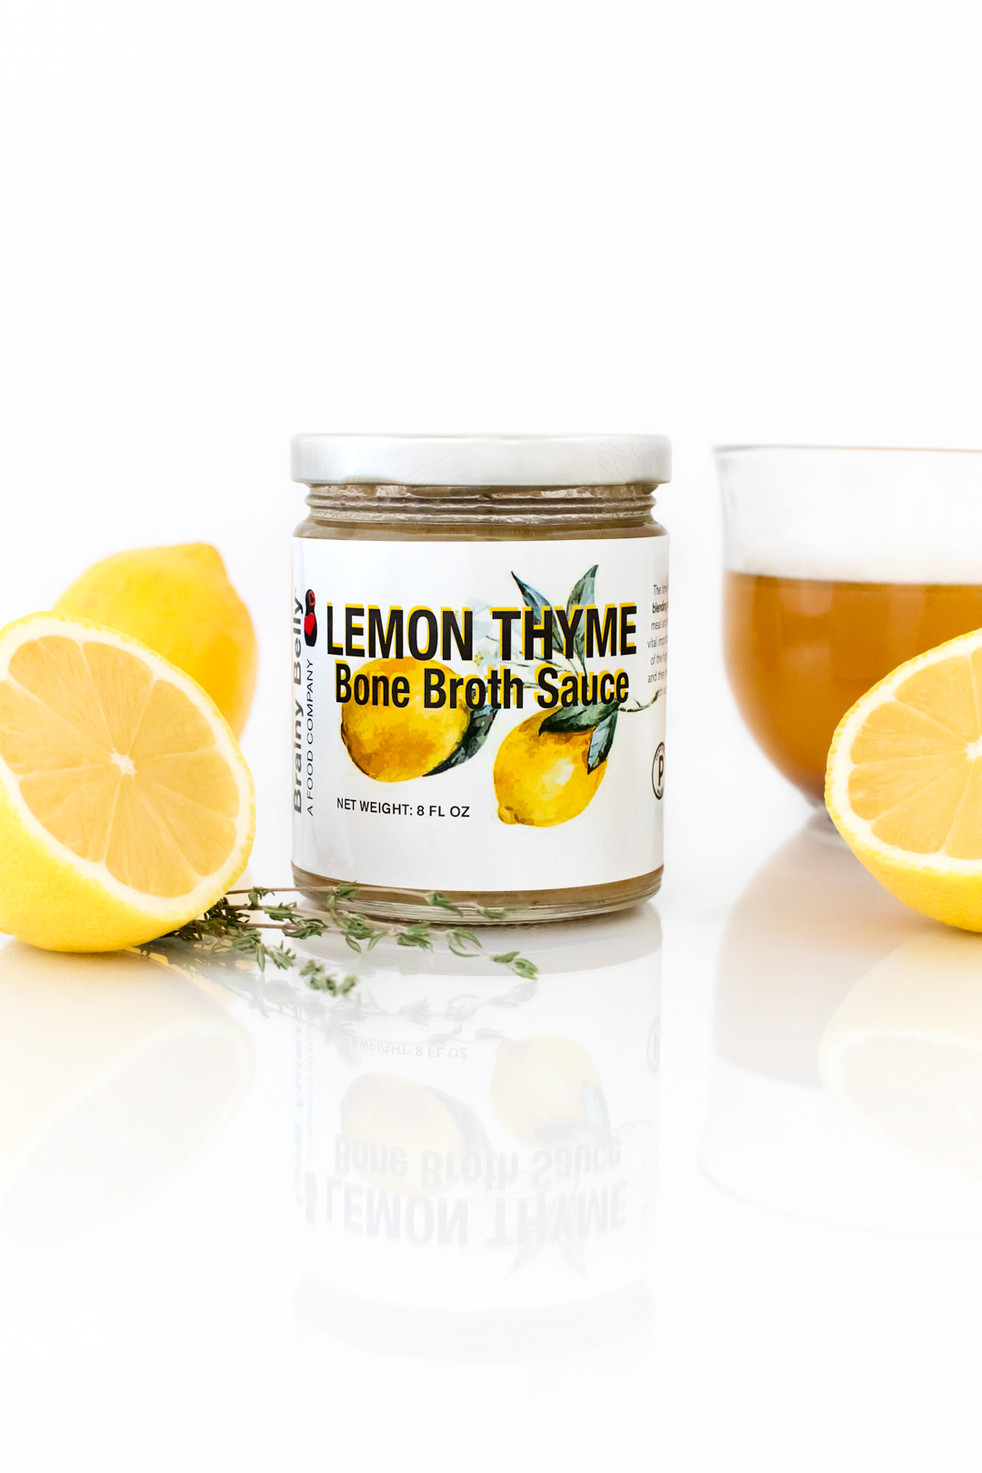 Bone Broth Sauces from Brainy Belly